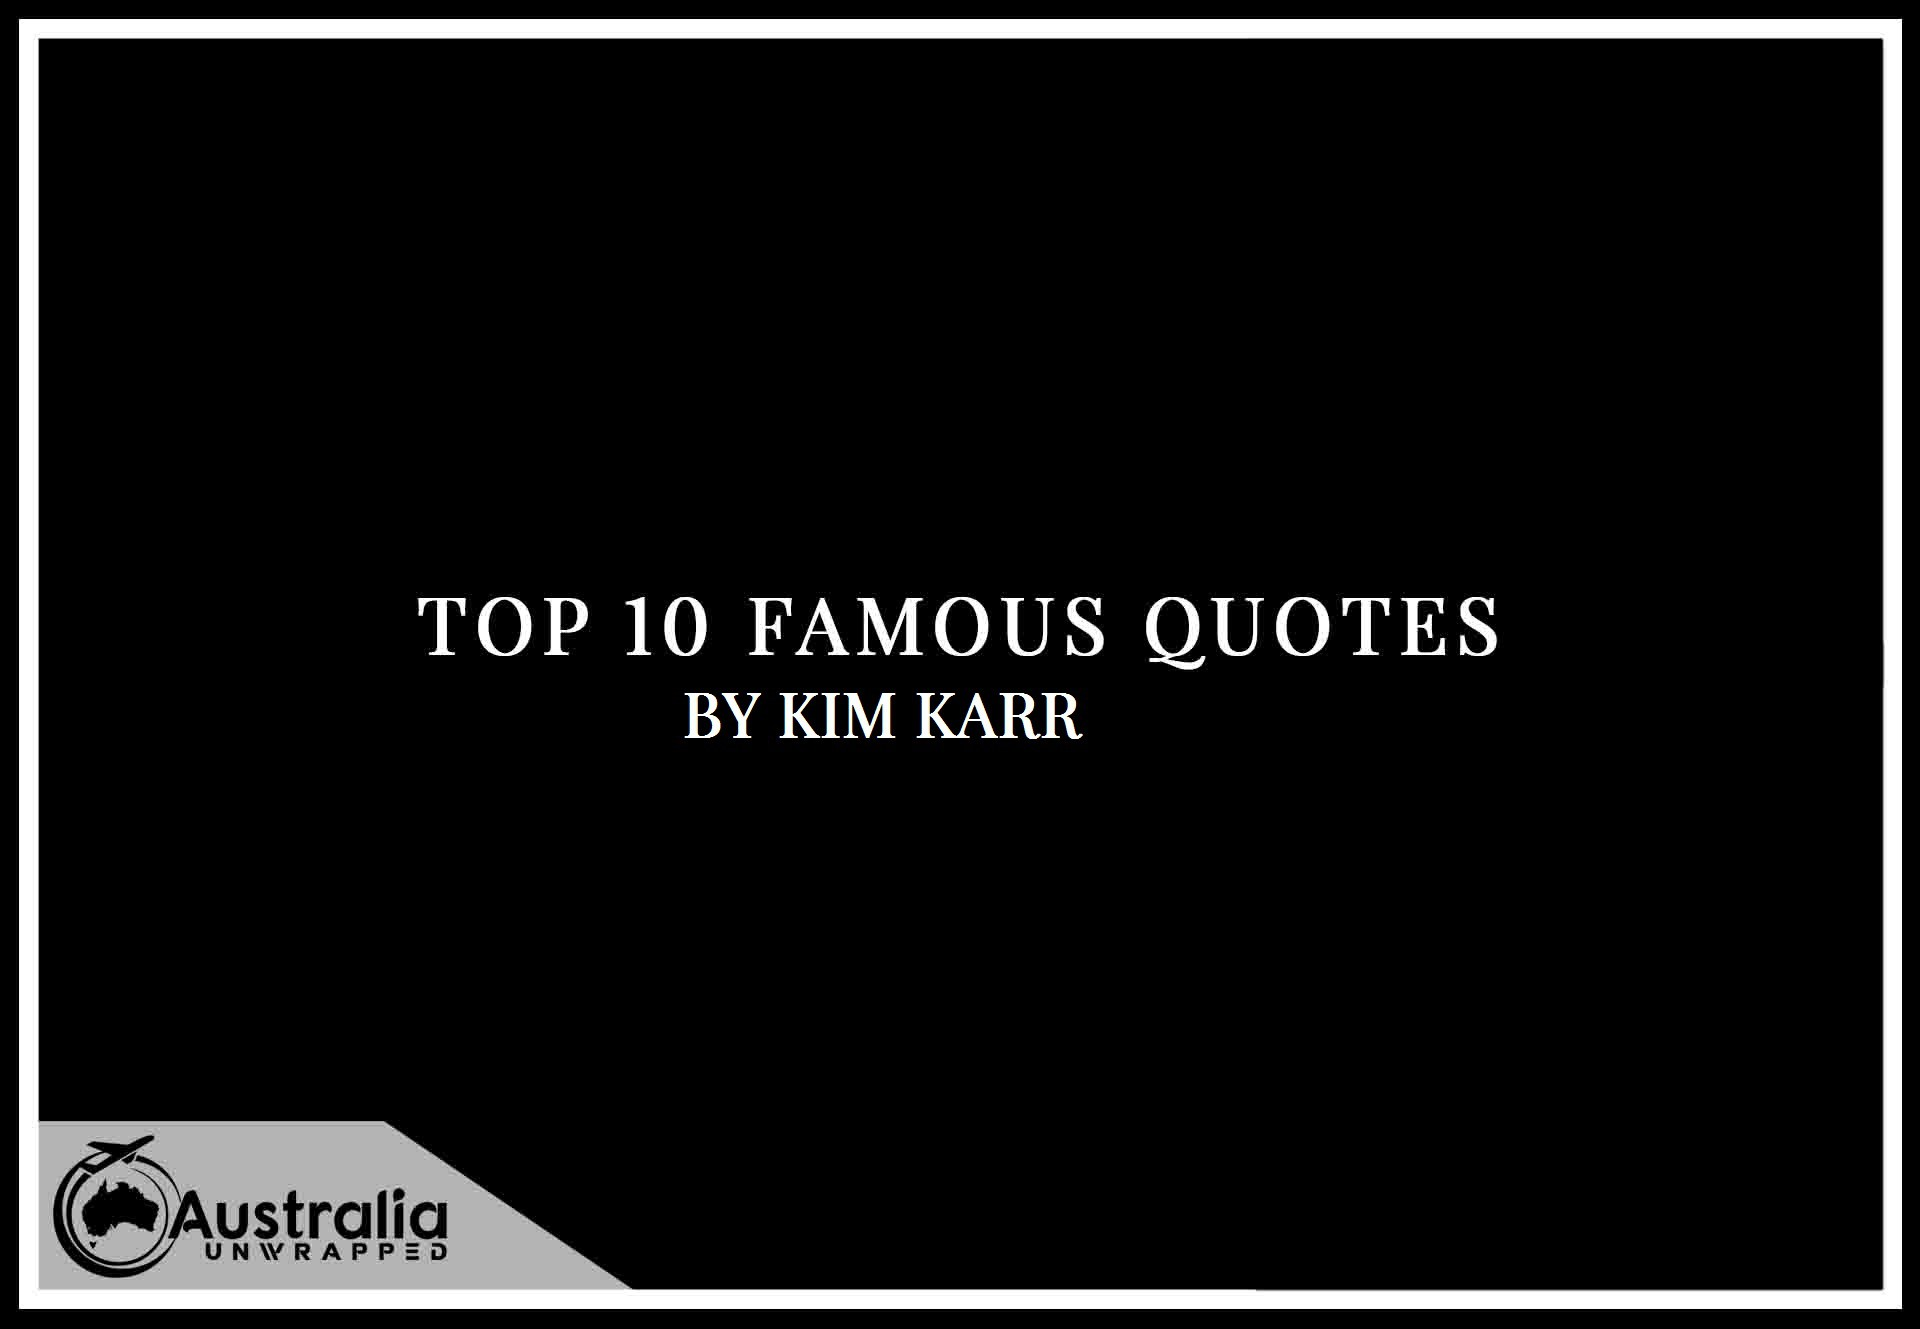 Kim Karr's Top 10 Popular and Famous Quotes